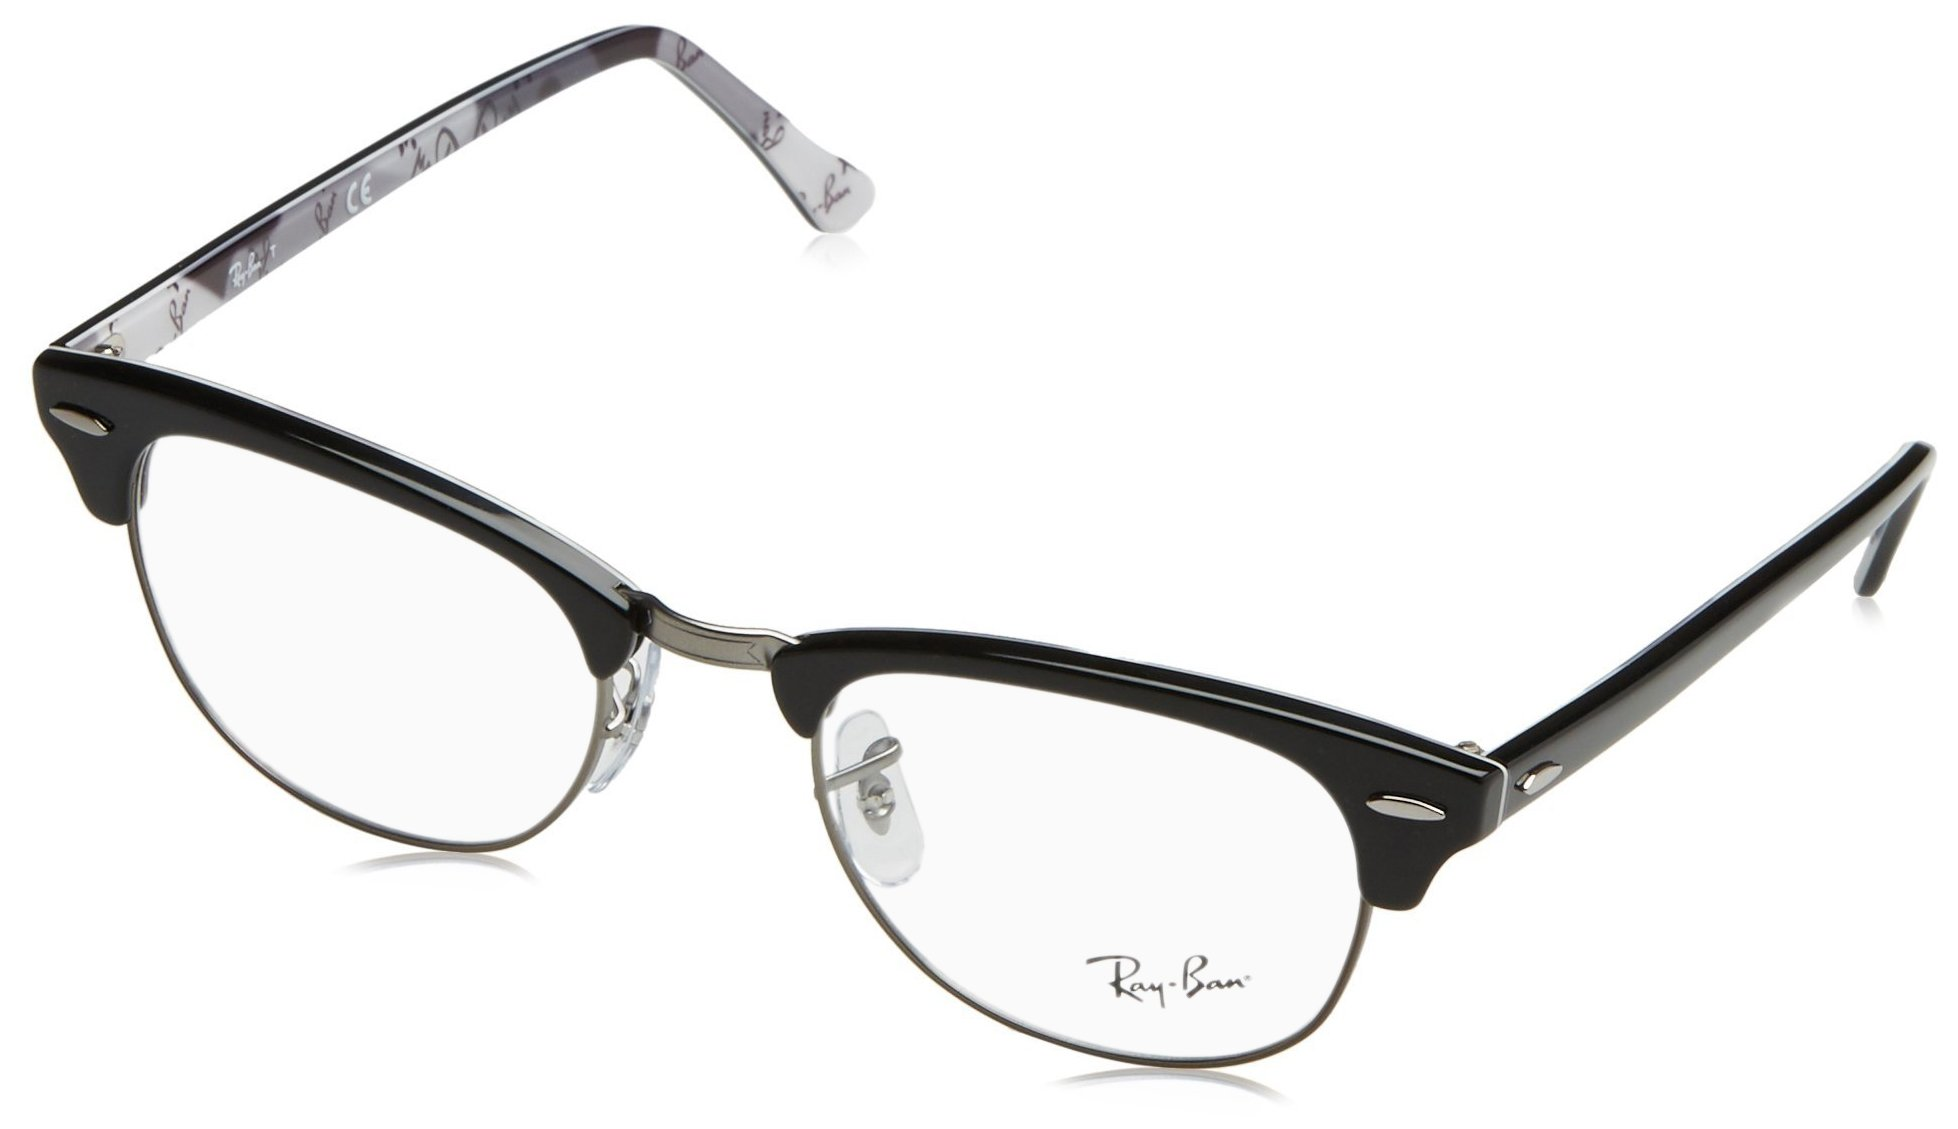 Ray-Ban Clubmaster Square Eyeglasses, Tortoise, 49 mm by Ray-Ban